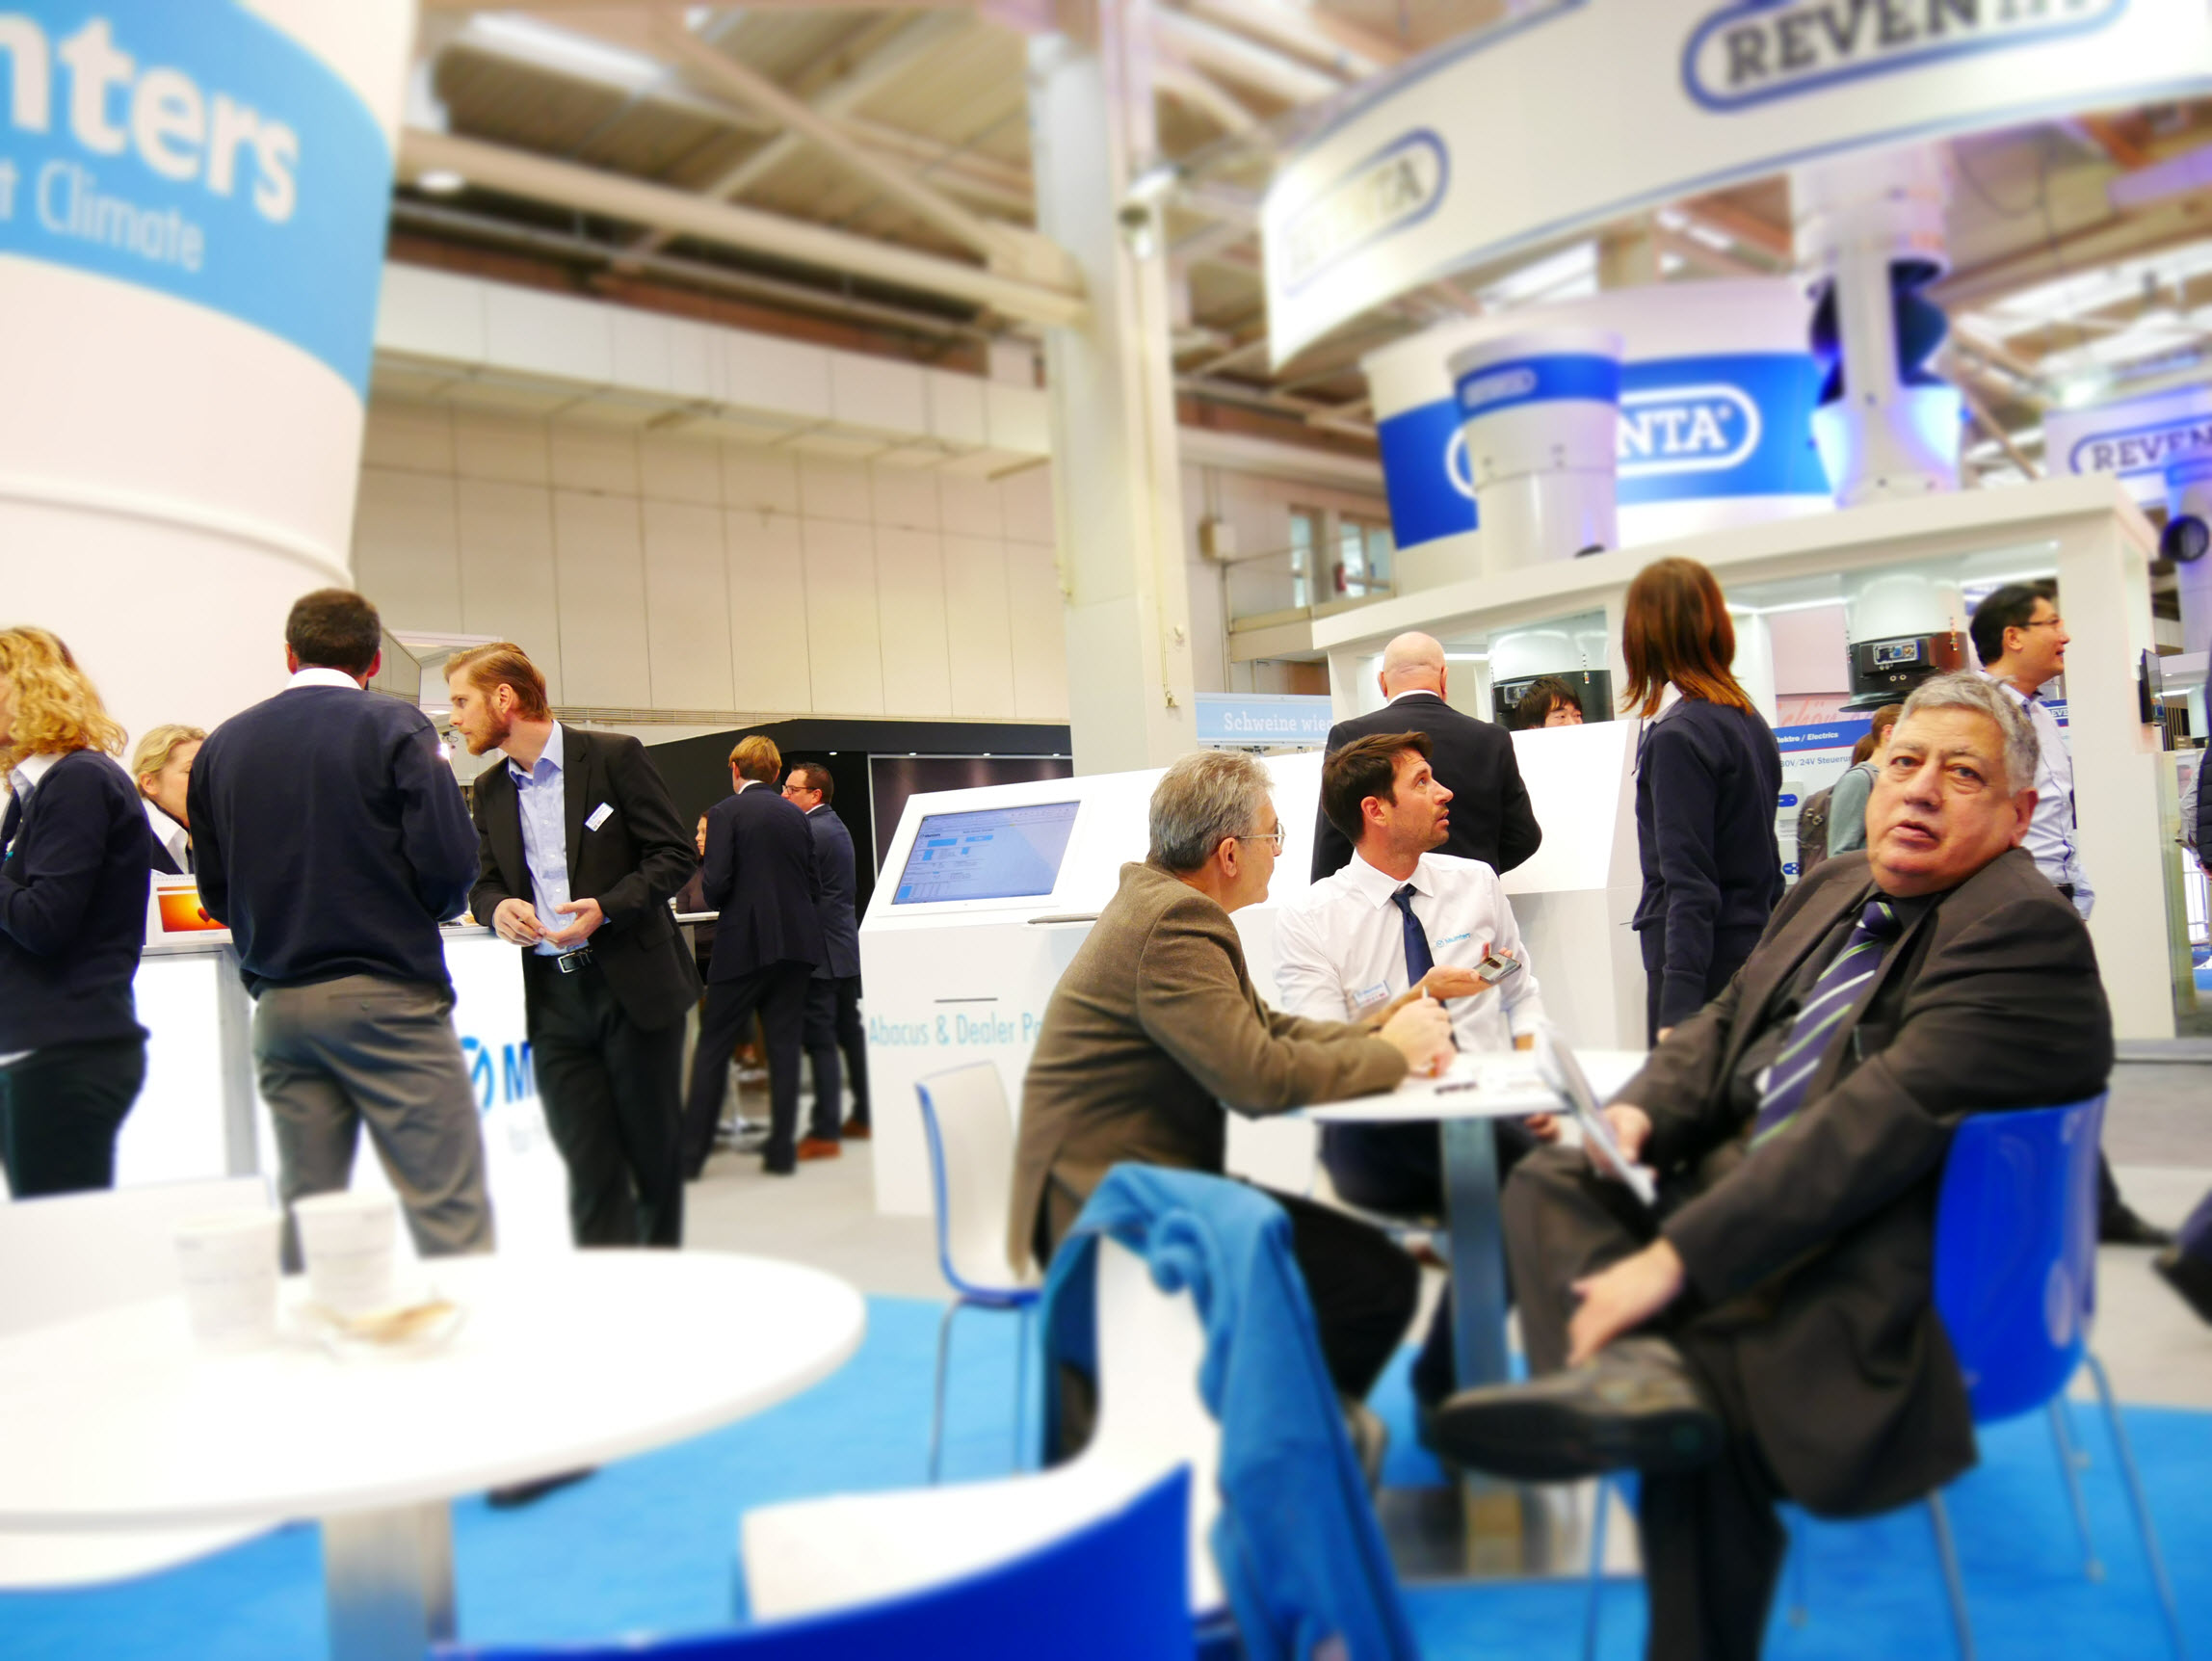 Discussions at Munters stand EuroTier